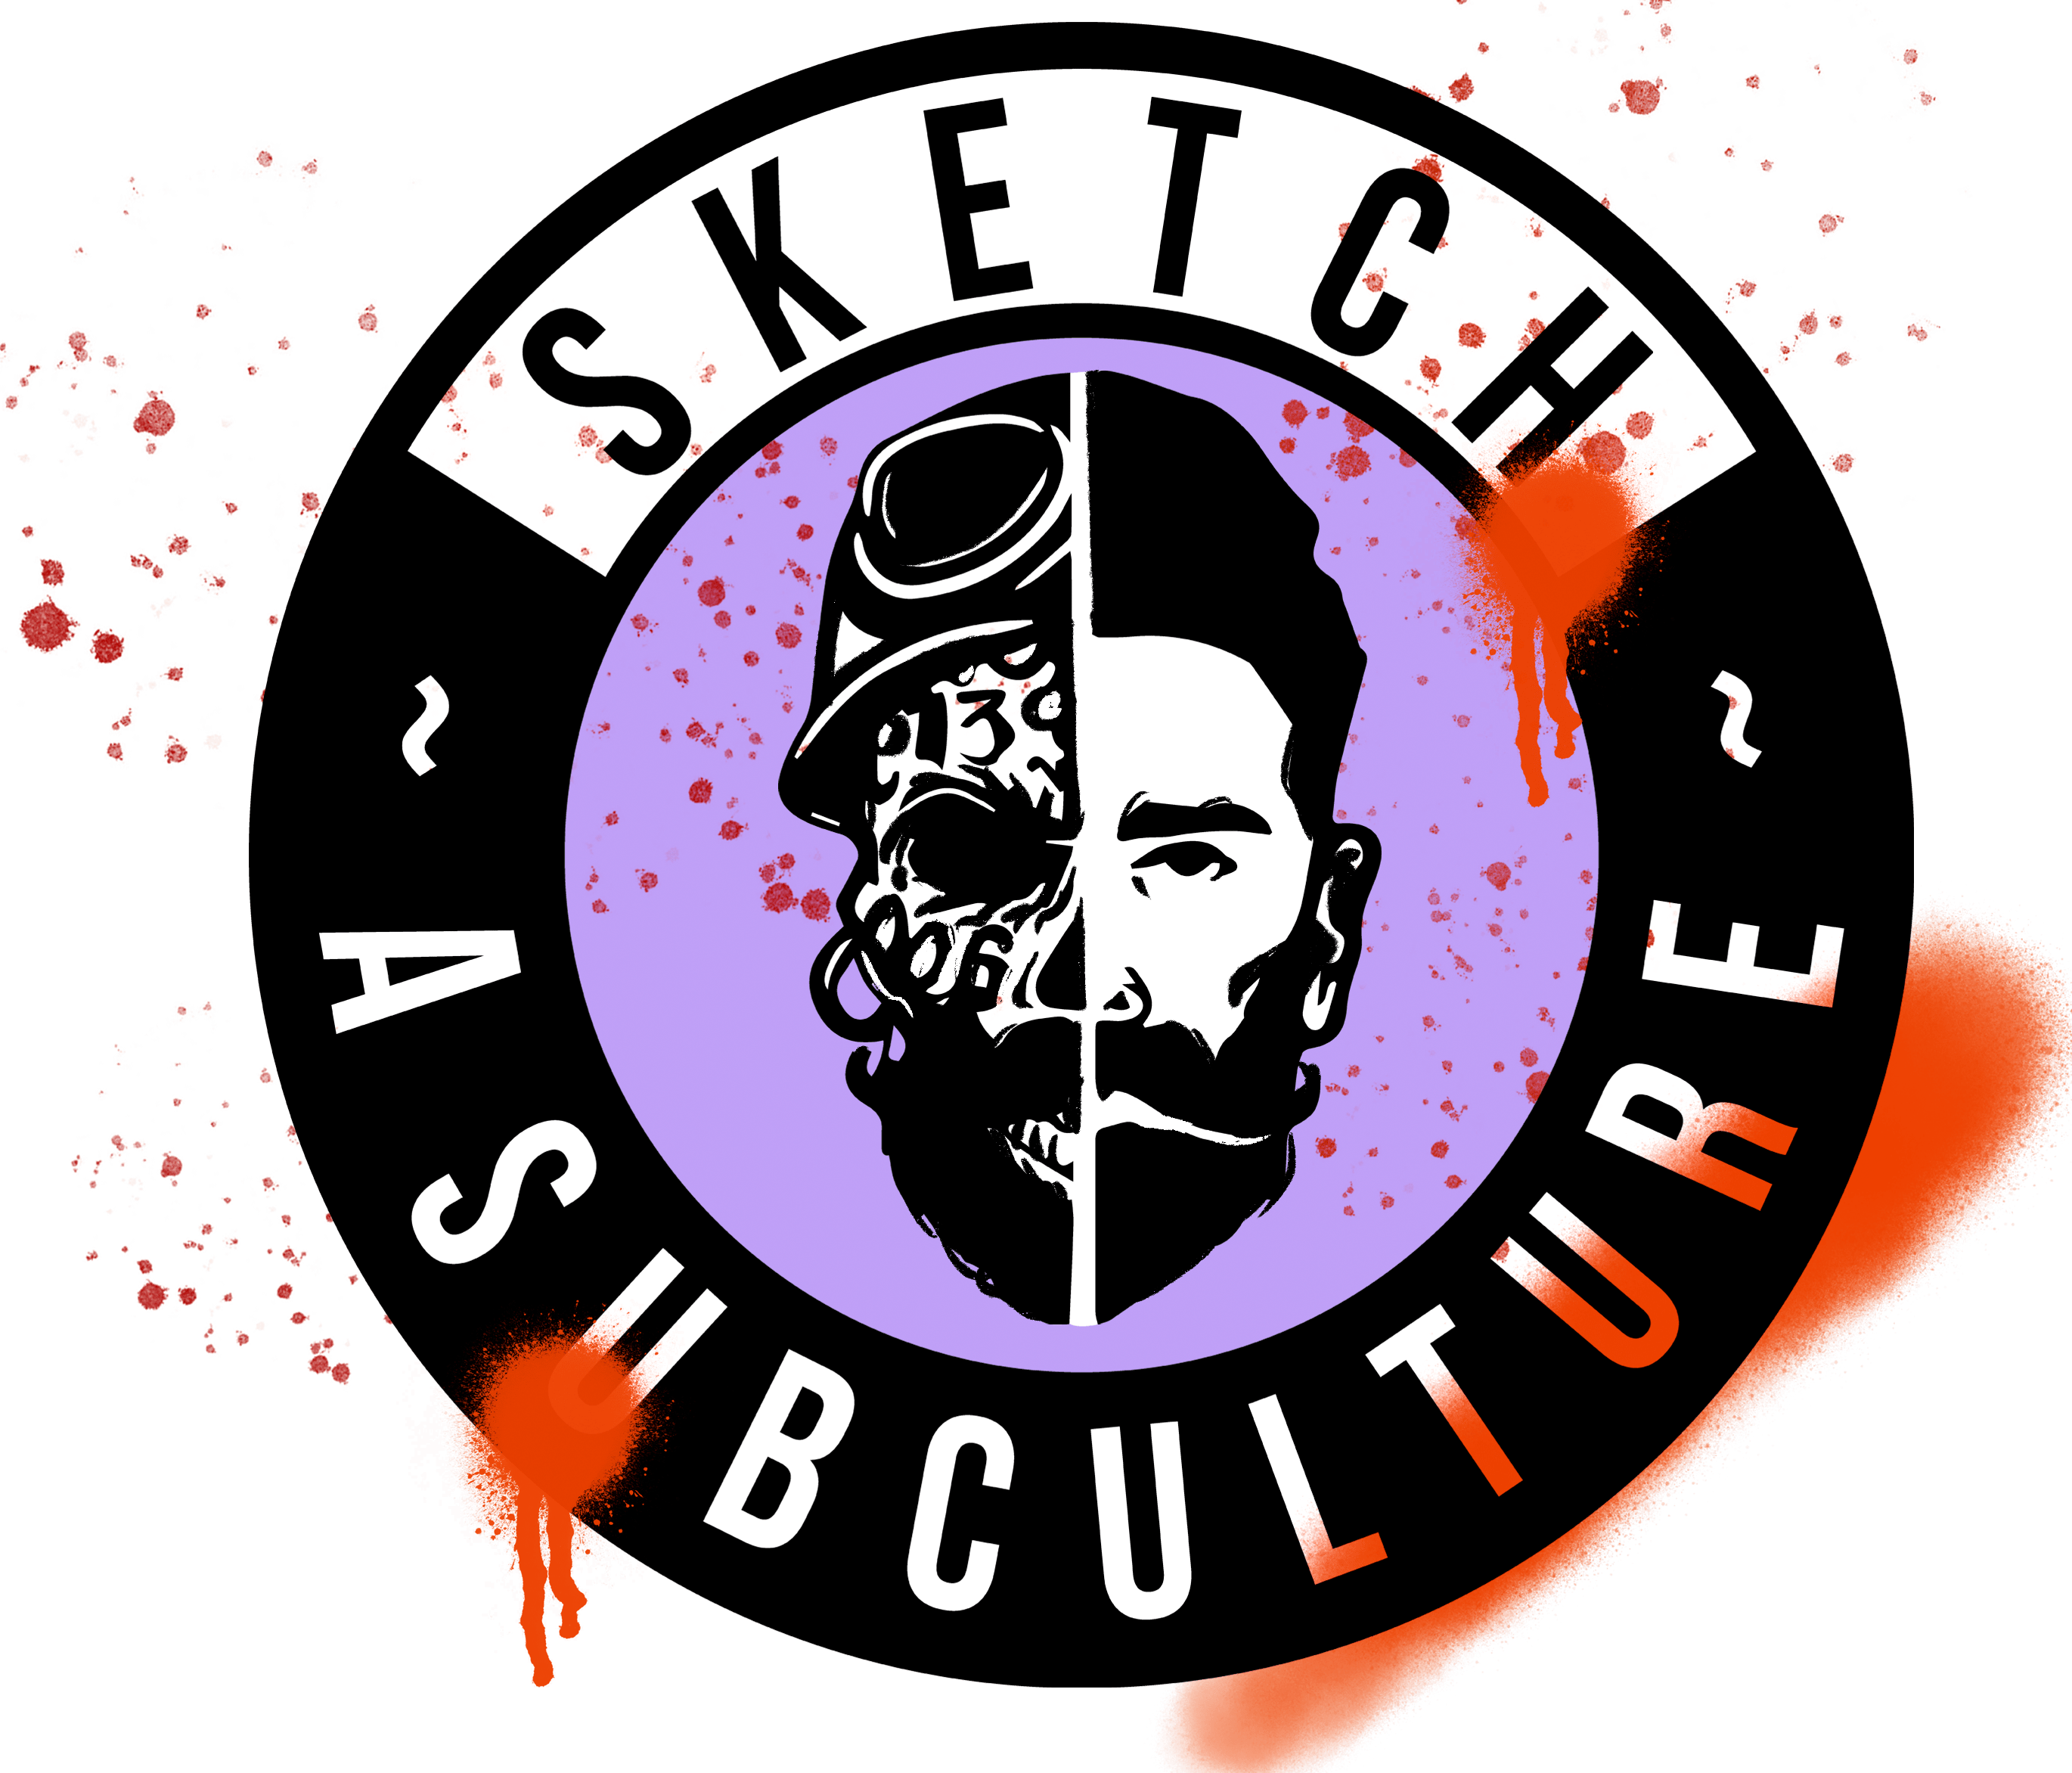 SKETCH A SUBCULTURE